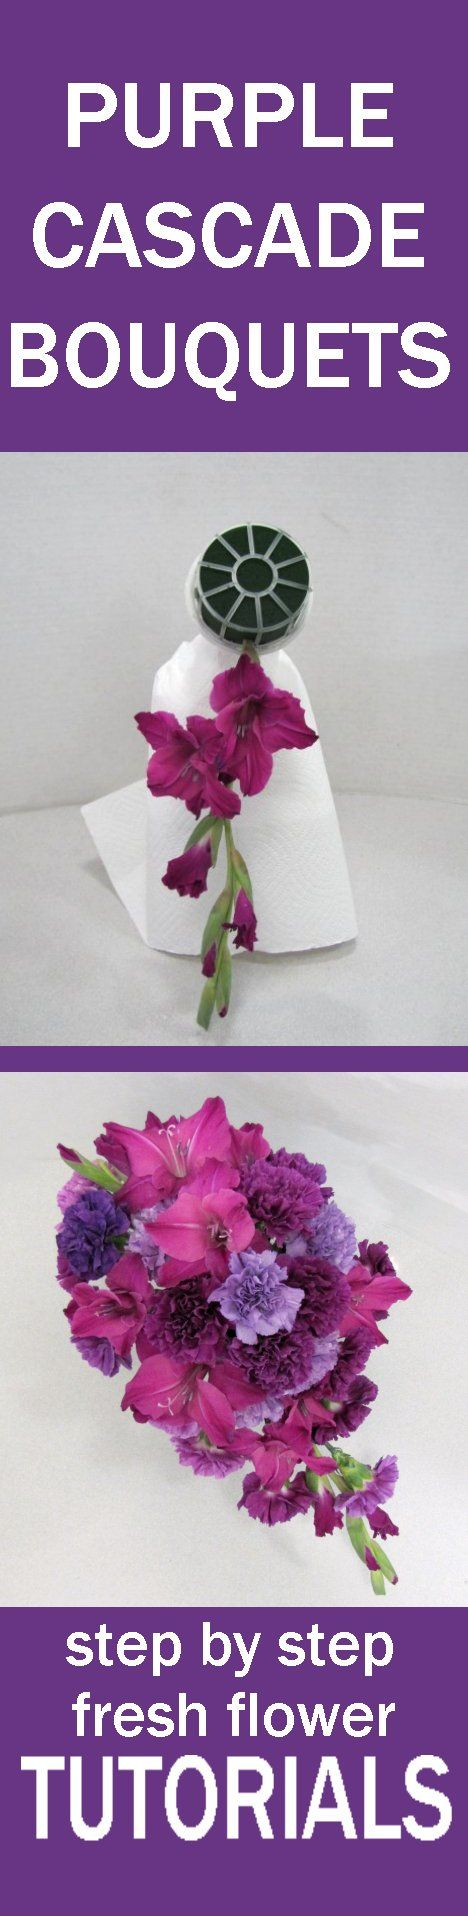 Purple Wedding Flower Bouquets - Easy Free Fresh Flower Tutorials Learn how to make bridal bouquets, wedding corsages, groom boutonnieres, church decorations, reception centerpieces and more!